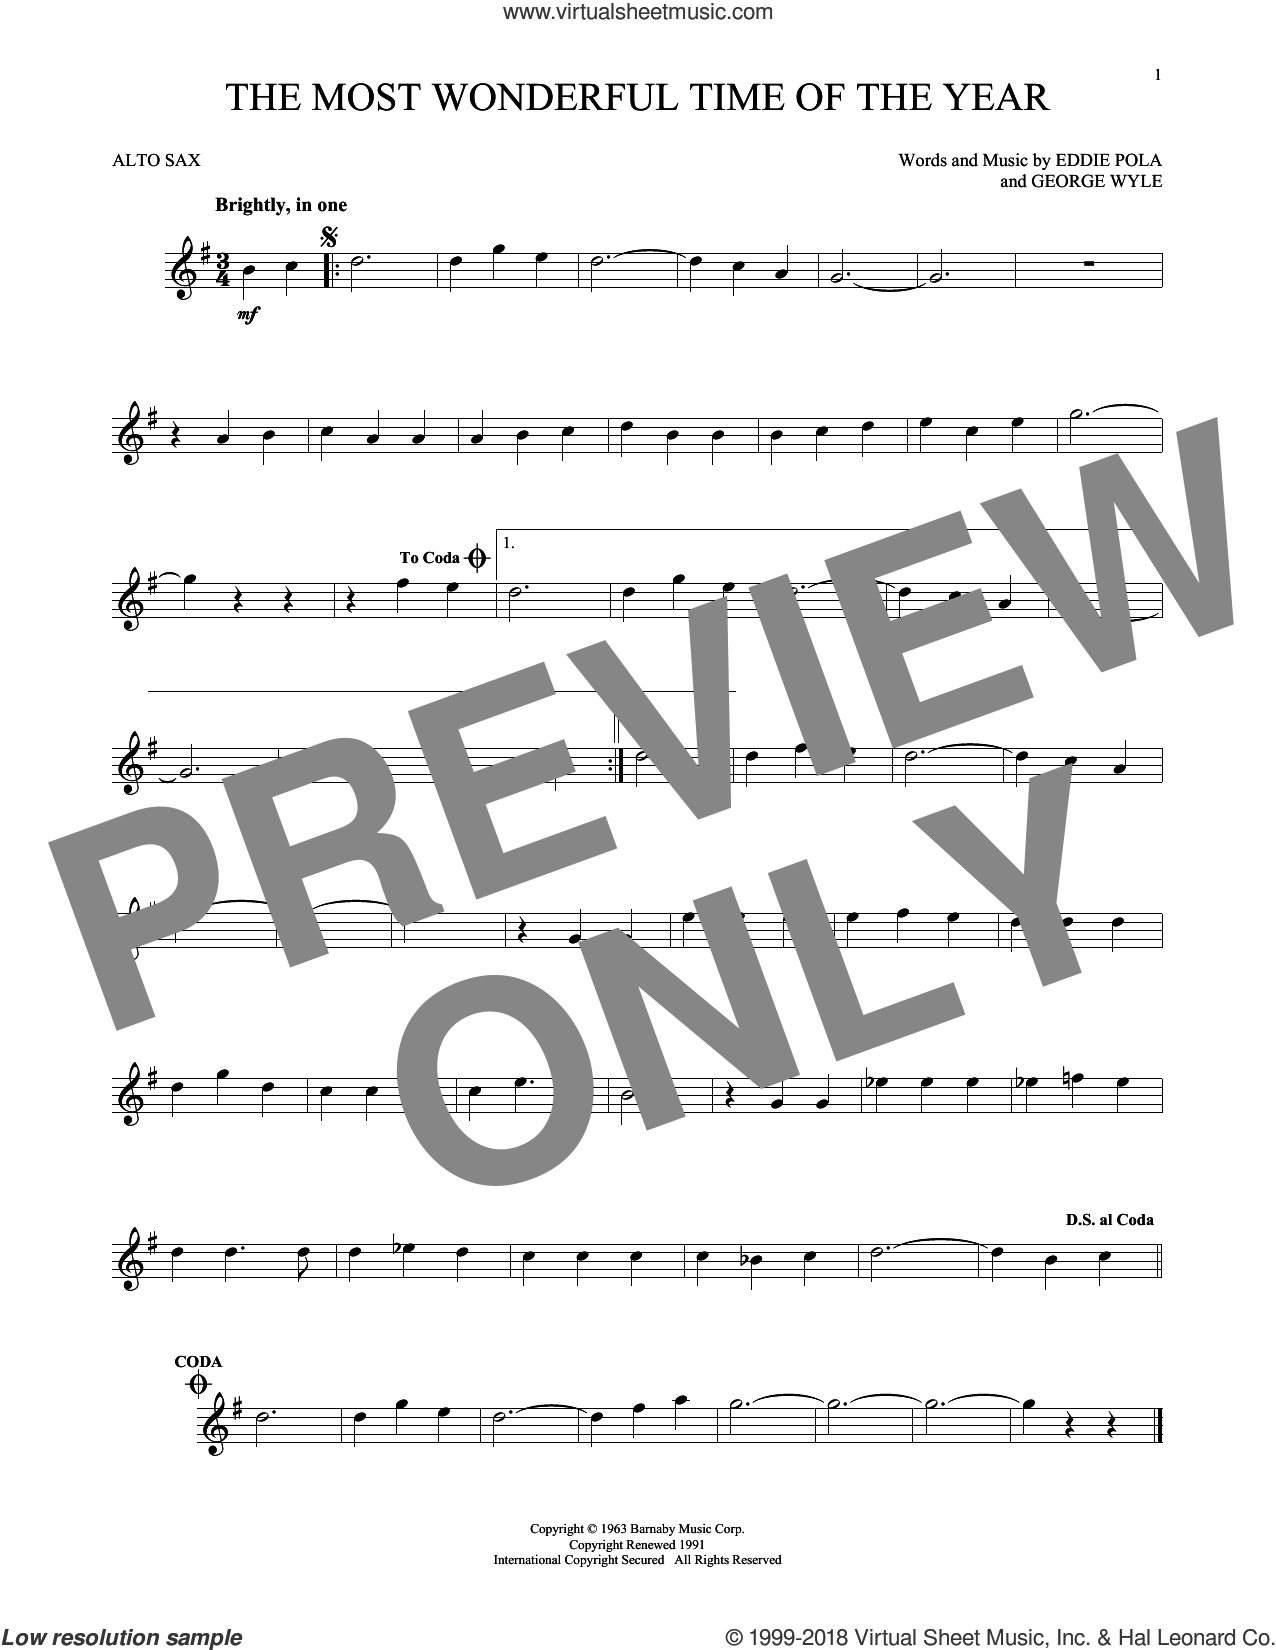 The Most Wonderful Time Of The Year sheet music for alto saxophone solo by George Wyle, Andy Williams and Eddie Pola. Score Image Preview.